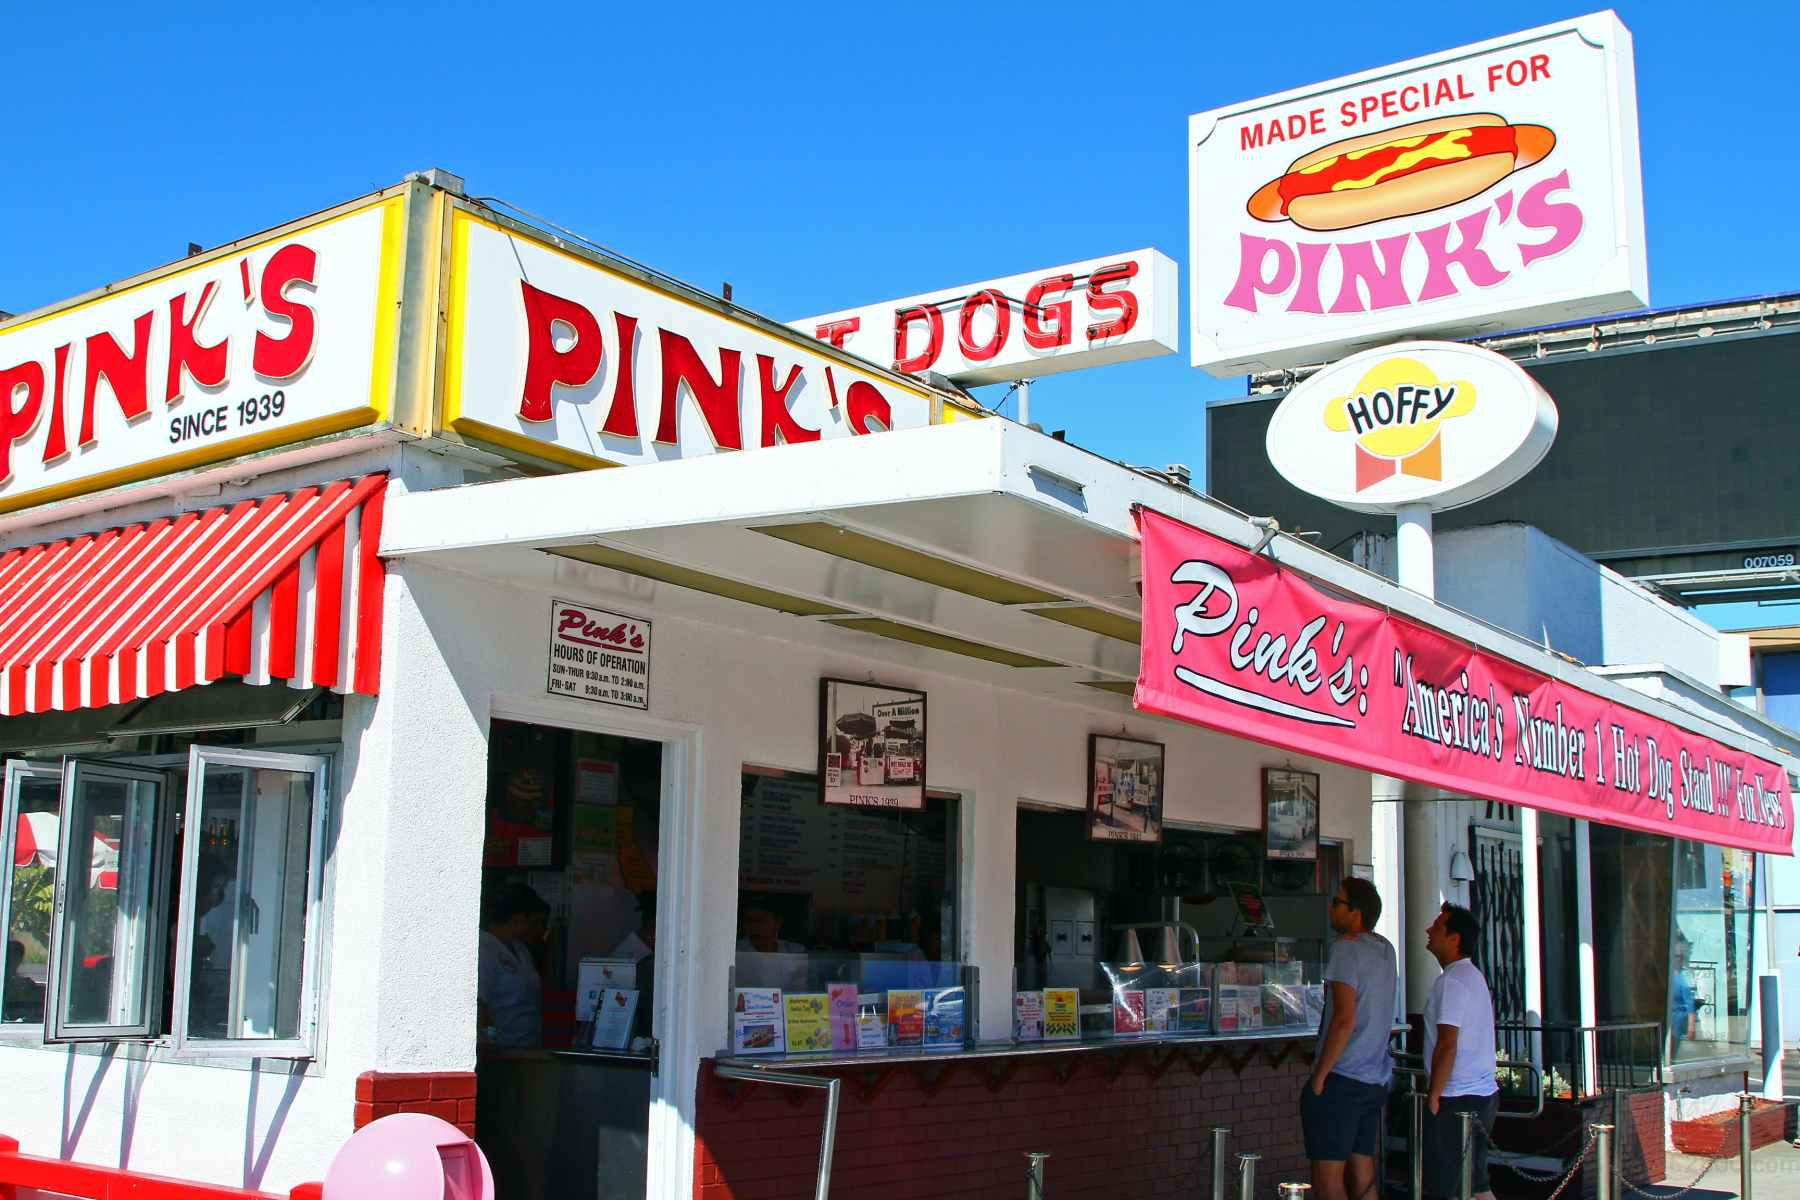 COVID-19 surge prompts temporary closure of famous Pink's Hot Dogs